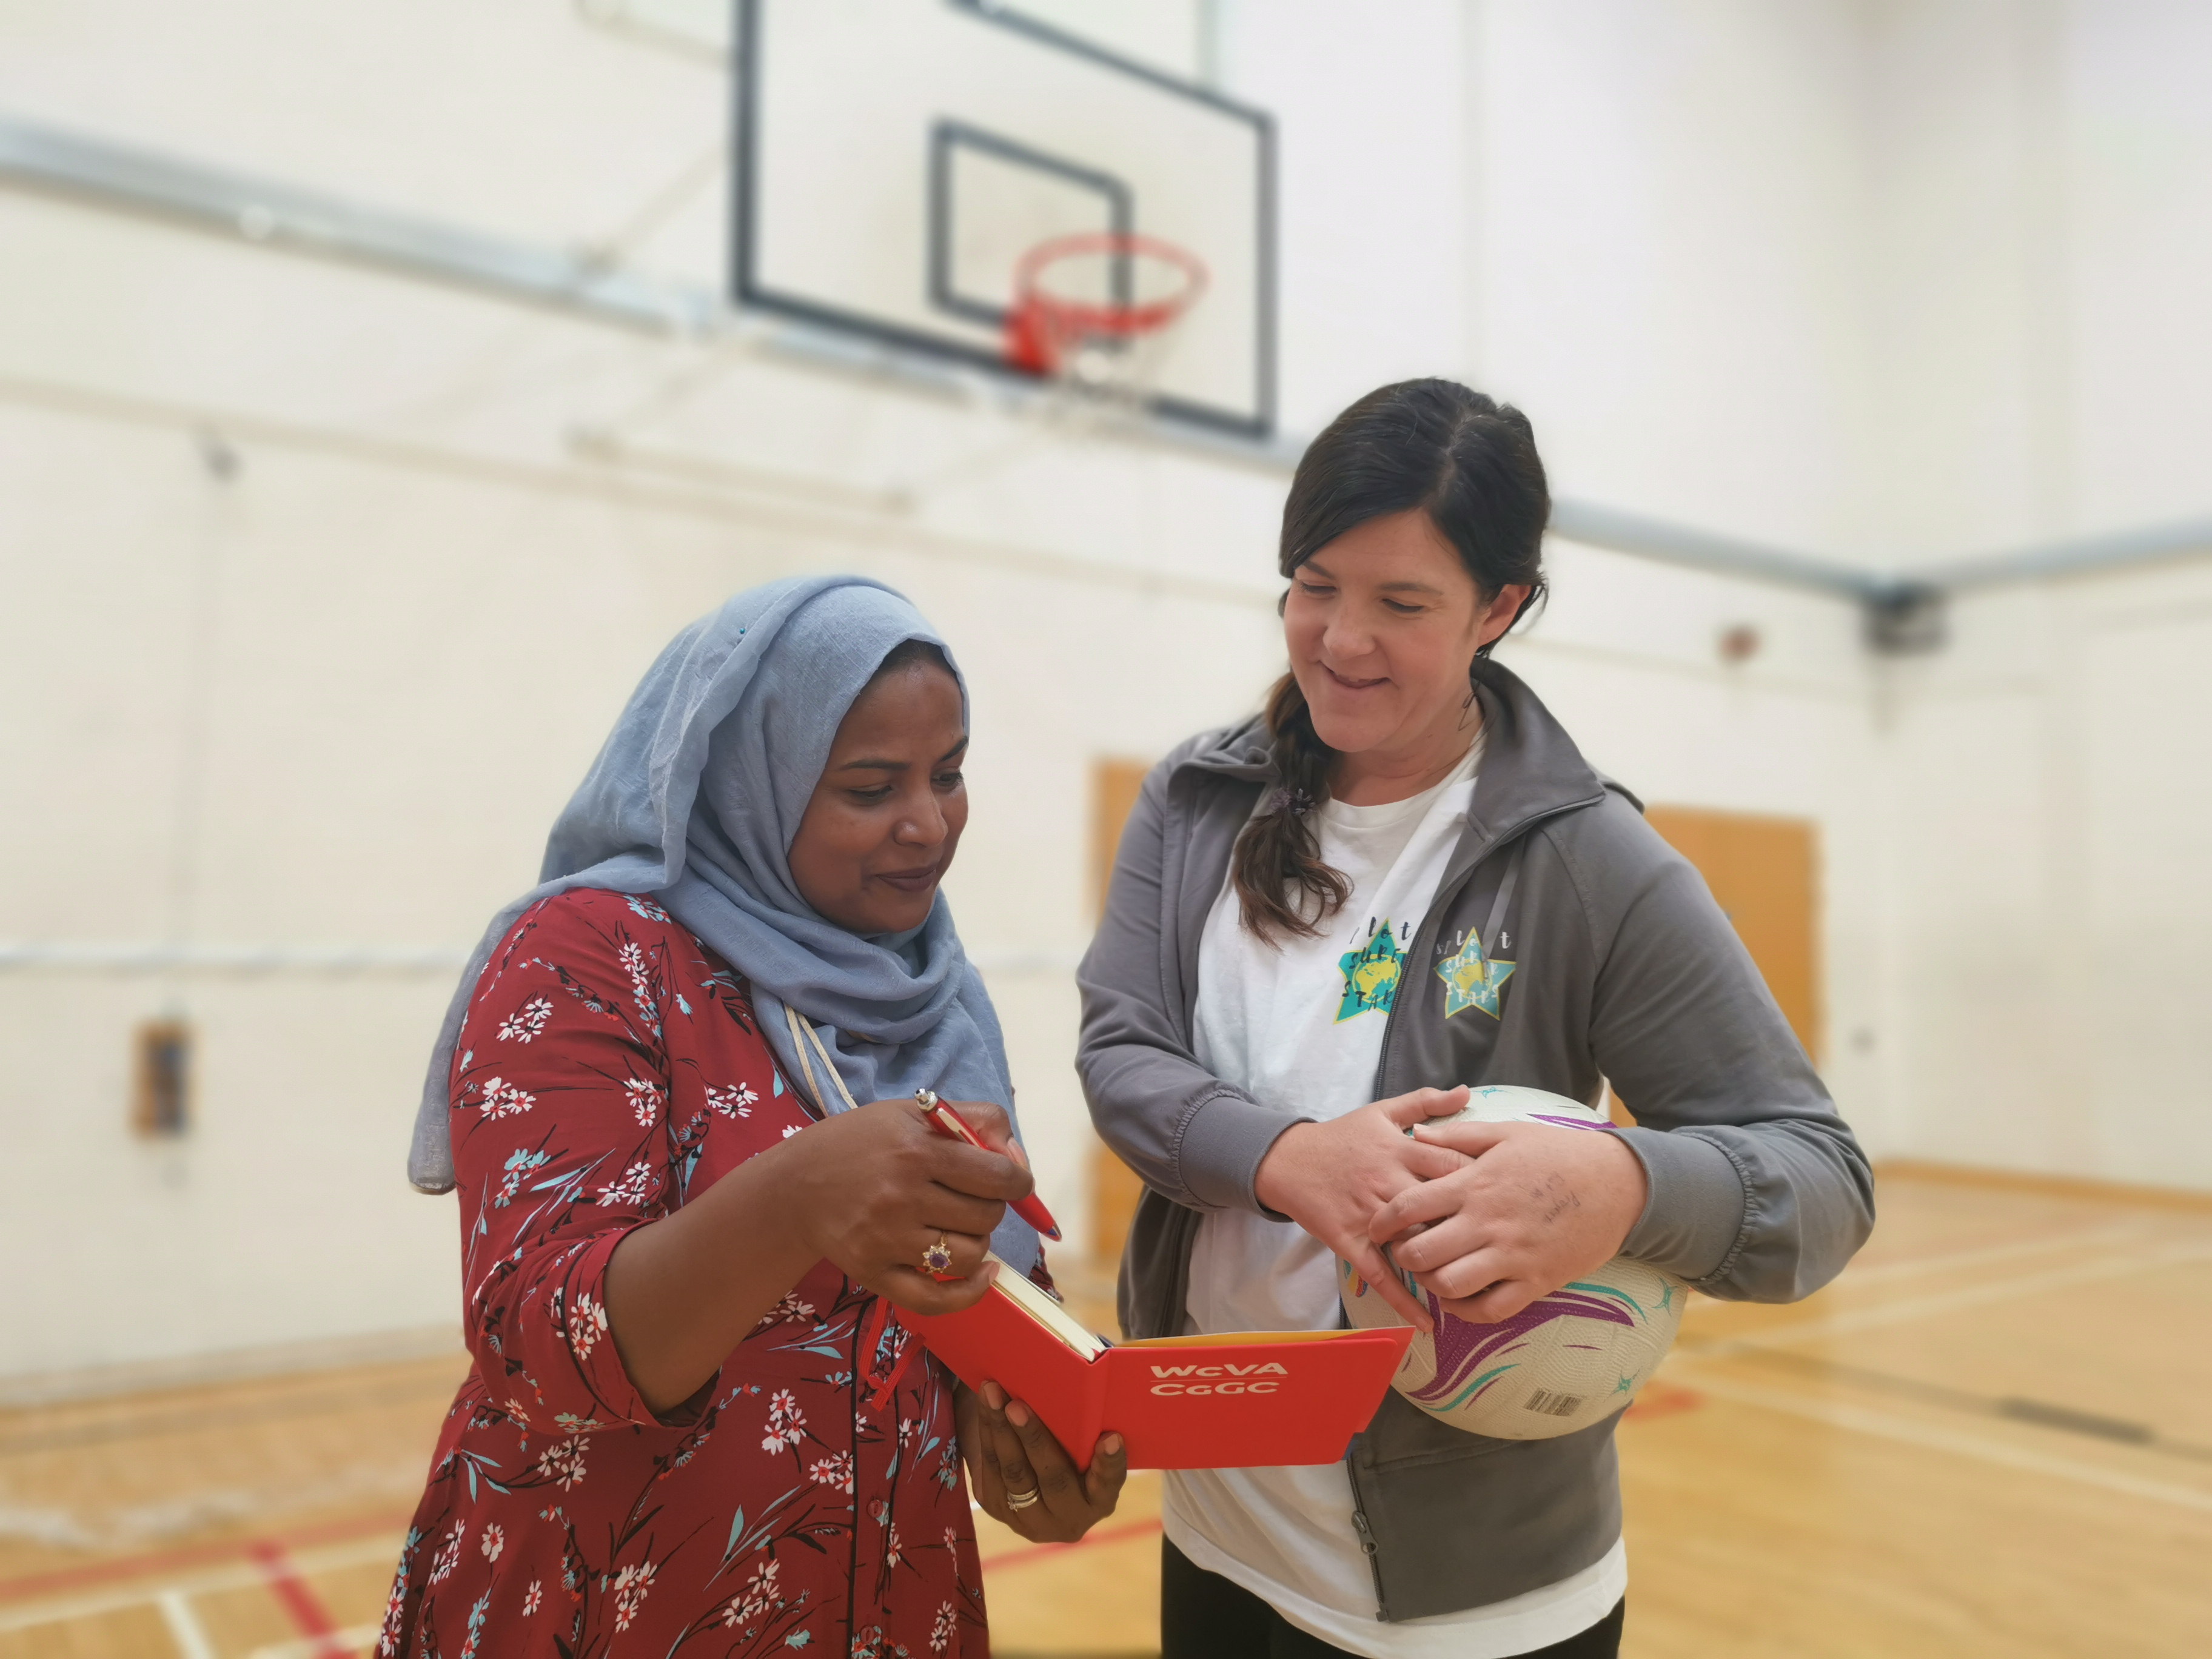 Two women in a leisure centre hall share notes as they look at a workbook